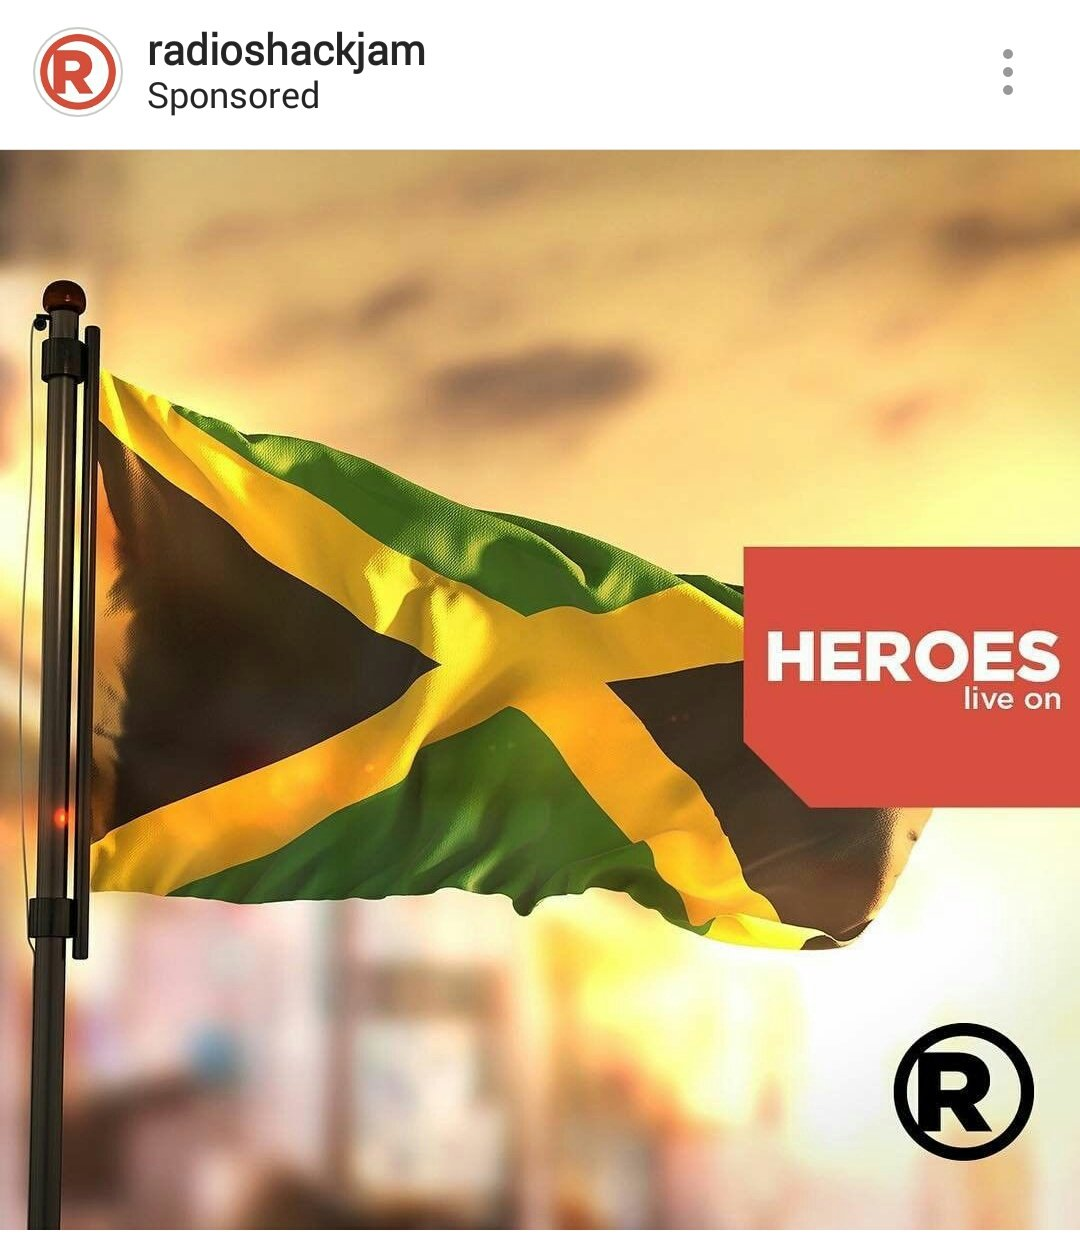 There's a Radio Shack in Jamaica now. Who would have thunk it?! https://t.co/fAU2yLvFyM